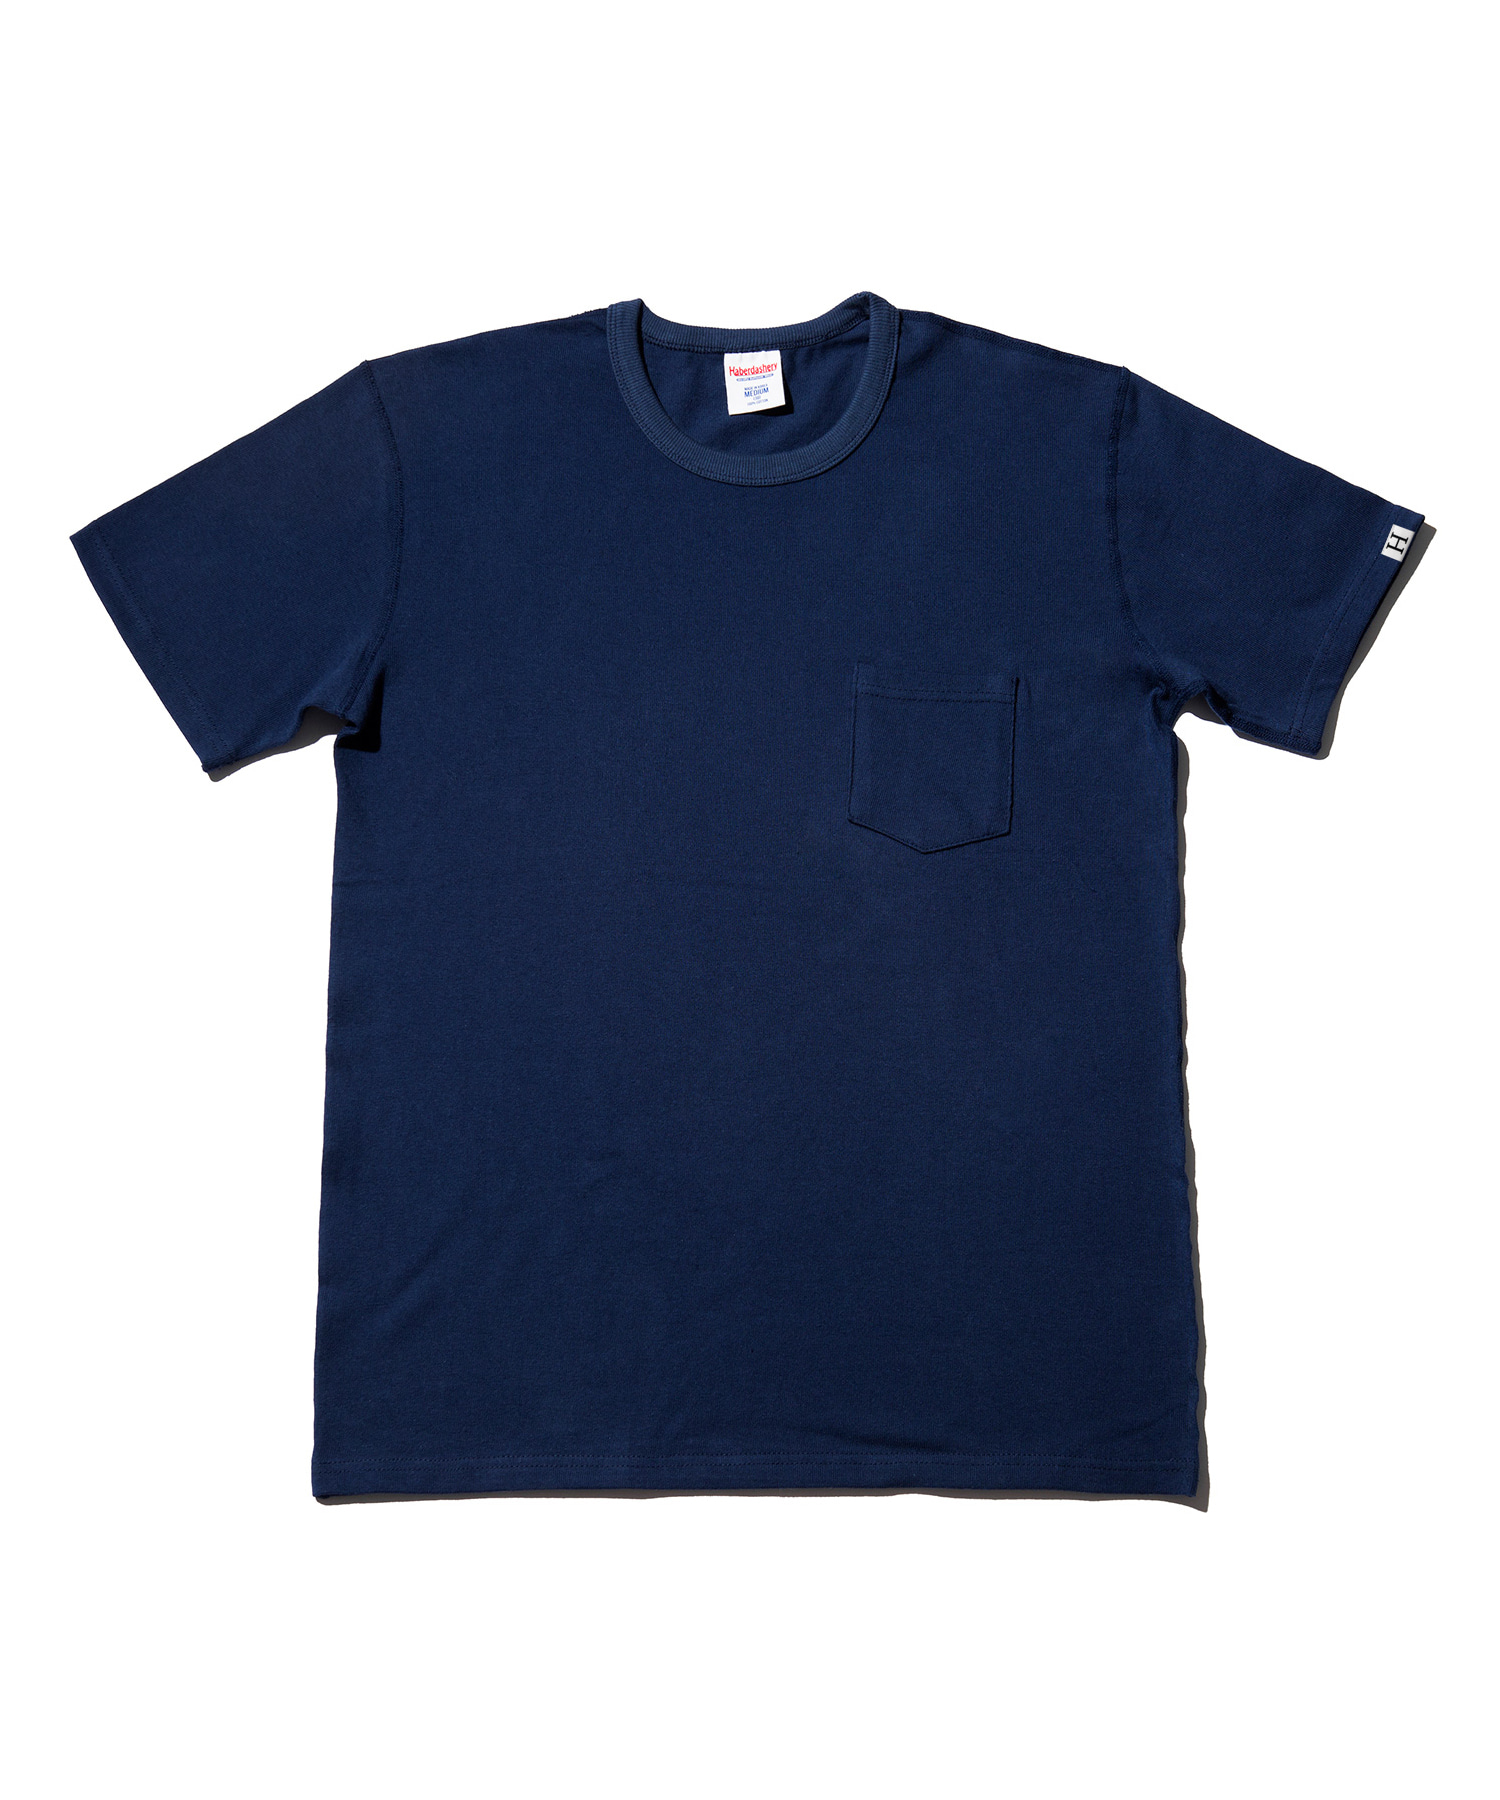 해버대셔리 POCKET CREW NECK SHORT SLEEVE_NAVY